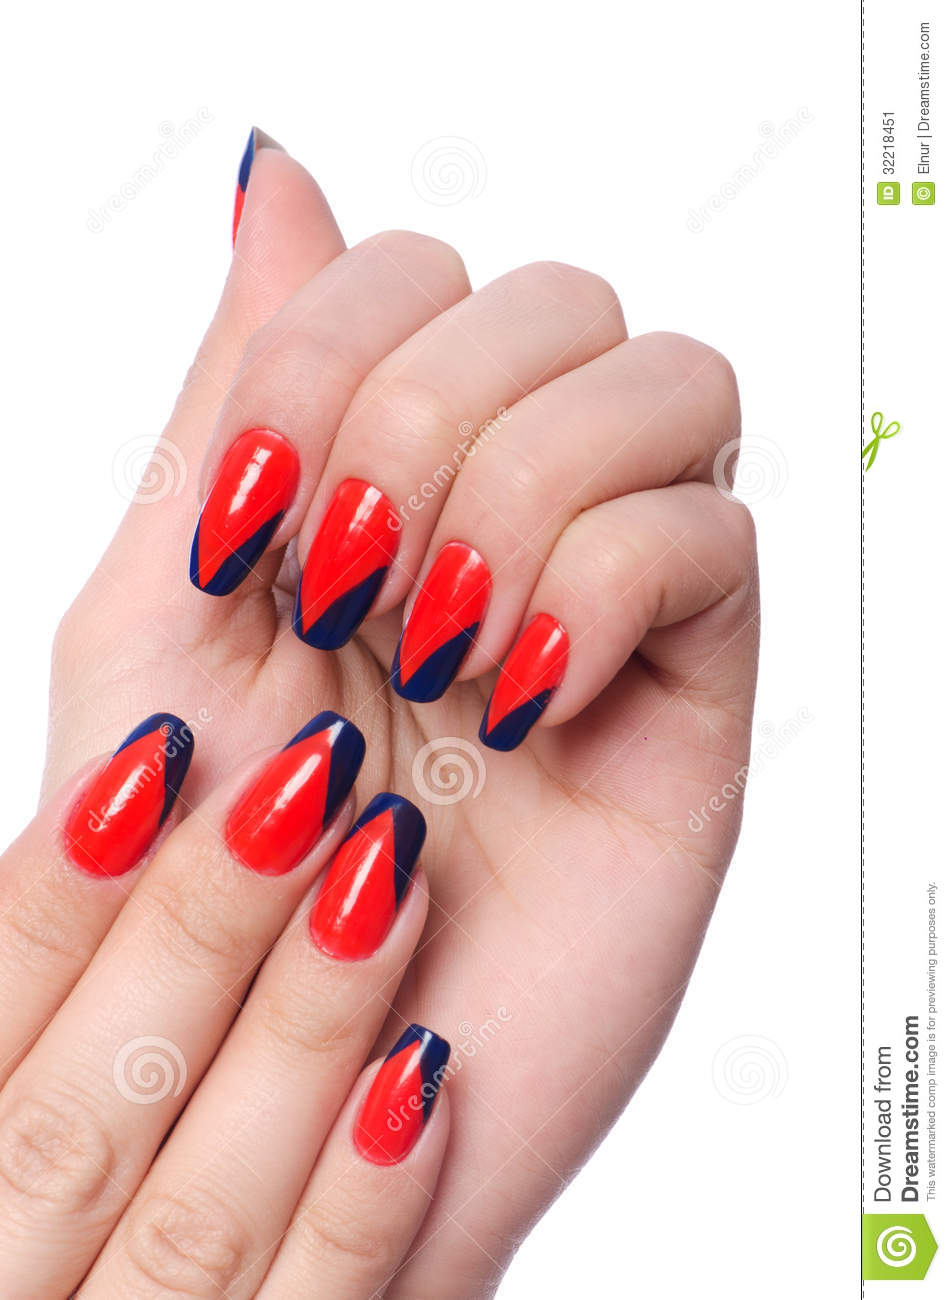 Pictures Of Nail Art Done By Hand How To Do A Hand Painted Nail Art